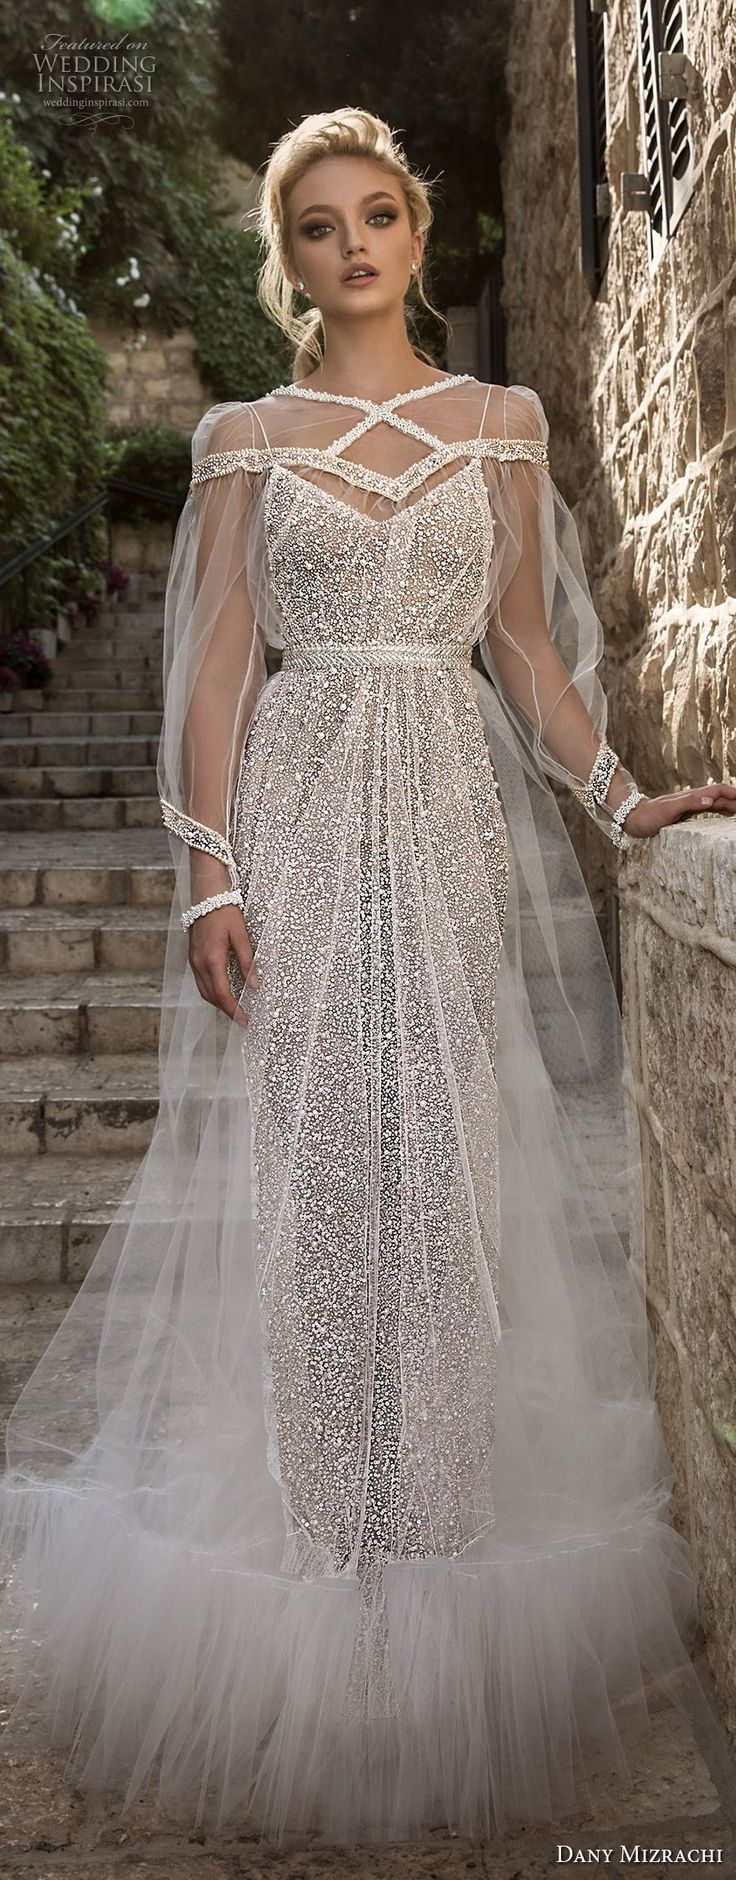 dany mizrachi spring 2018 bridal long sleeves illusion bateau sweetheart neckline full embellishment elegant glamorous sheath wedding dress a line overskirt sweep train (14) lv